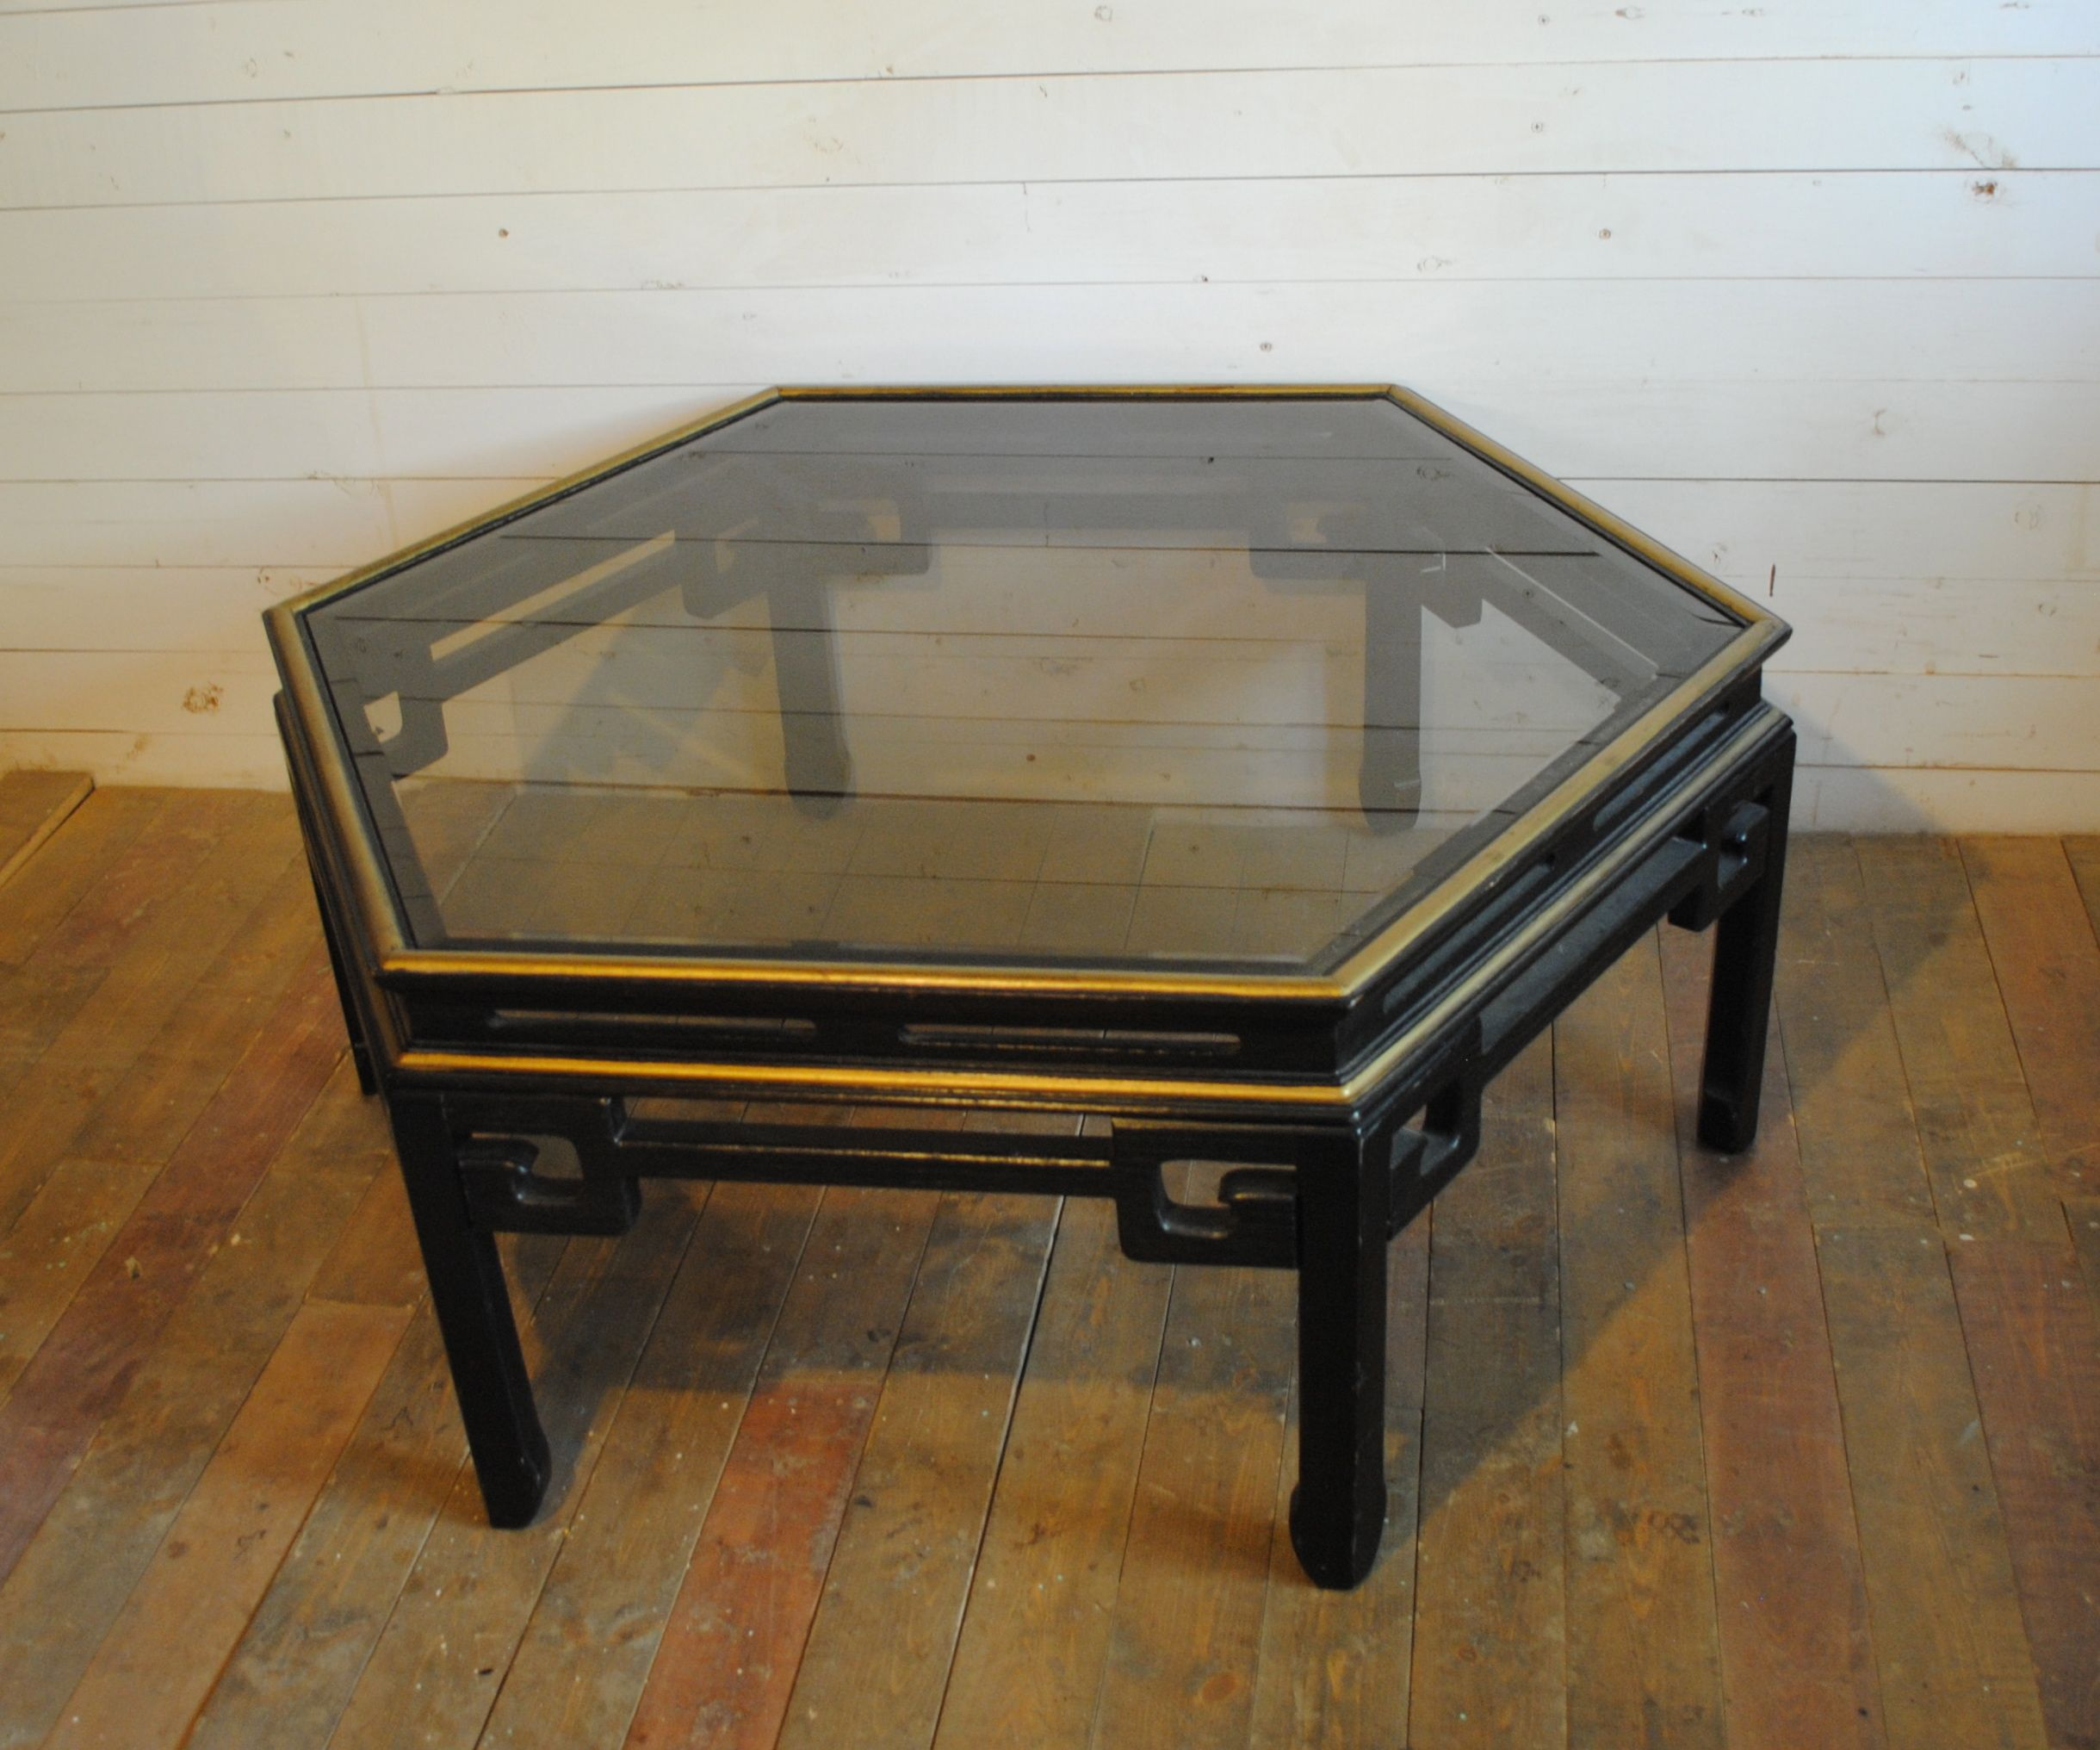 Image Result For Hexagonal Coffee Table Hexagon Coffee Table Coffee Table Table [ 2032 x 2439 Pixel ]